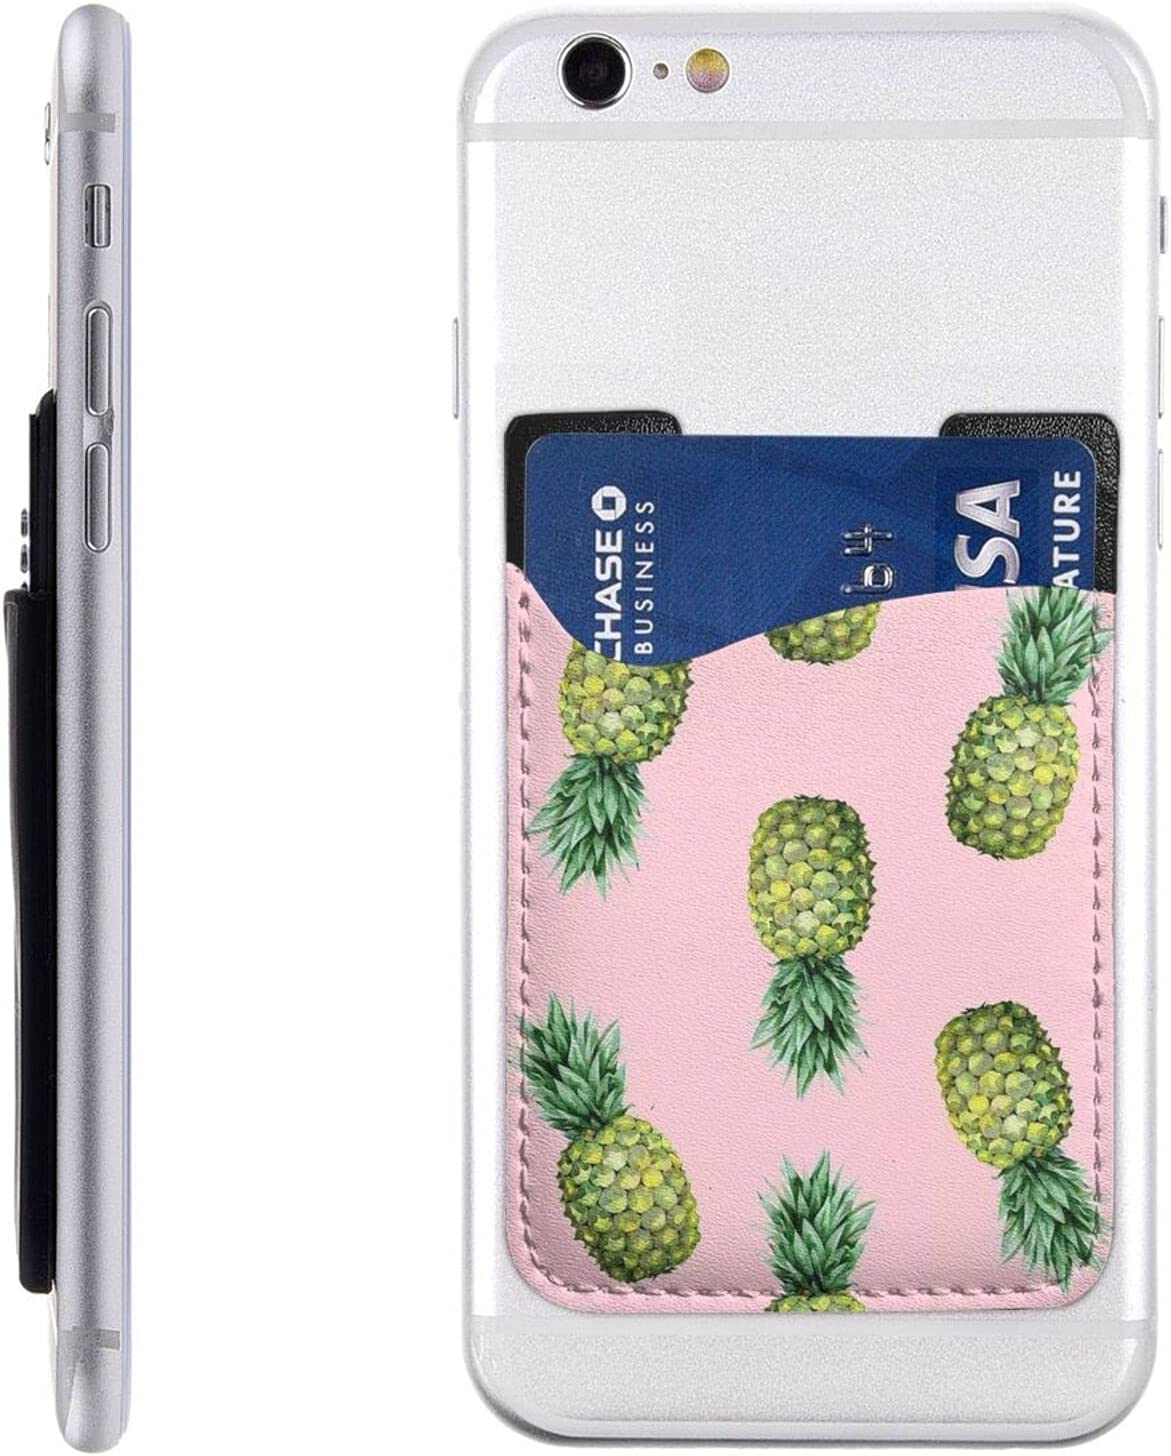 Pineapple Printed Phone Card Manufacturer regenerated product Ranking TOP3 Holder Wal Stick Cell On